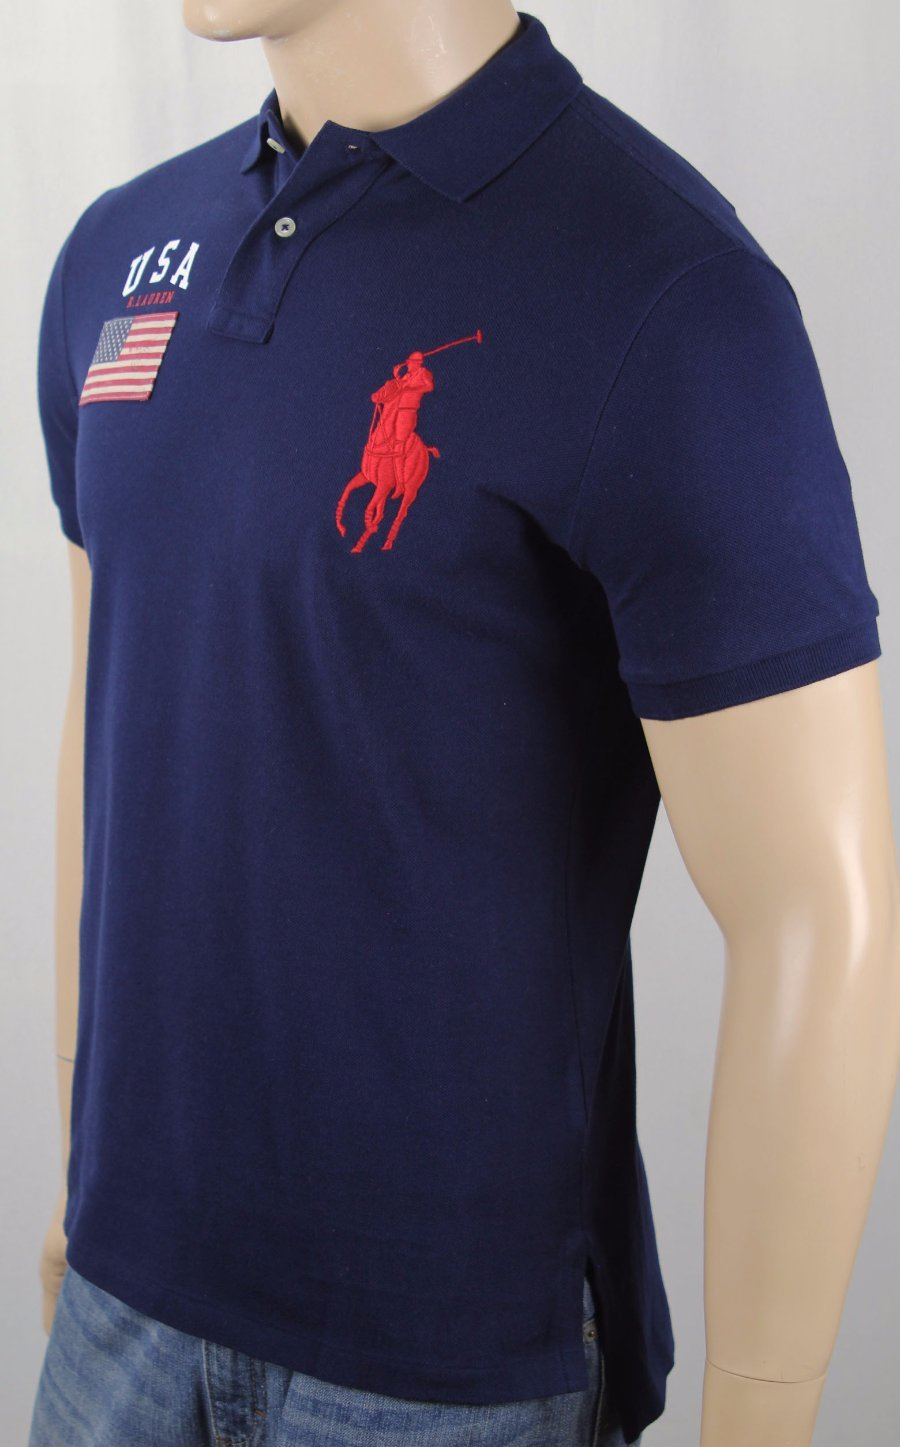 Polo Ralph Lauren Big and Tall Big BT-CAPE SHORT SLEEVE POLO SHIRT IN NAVY-RED